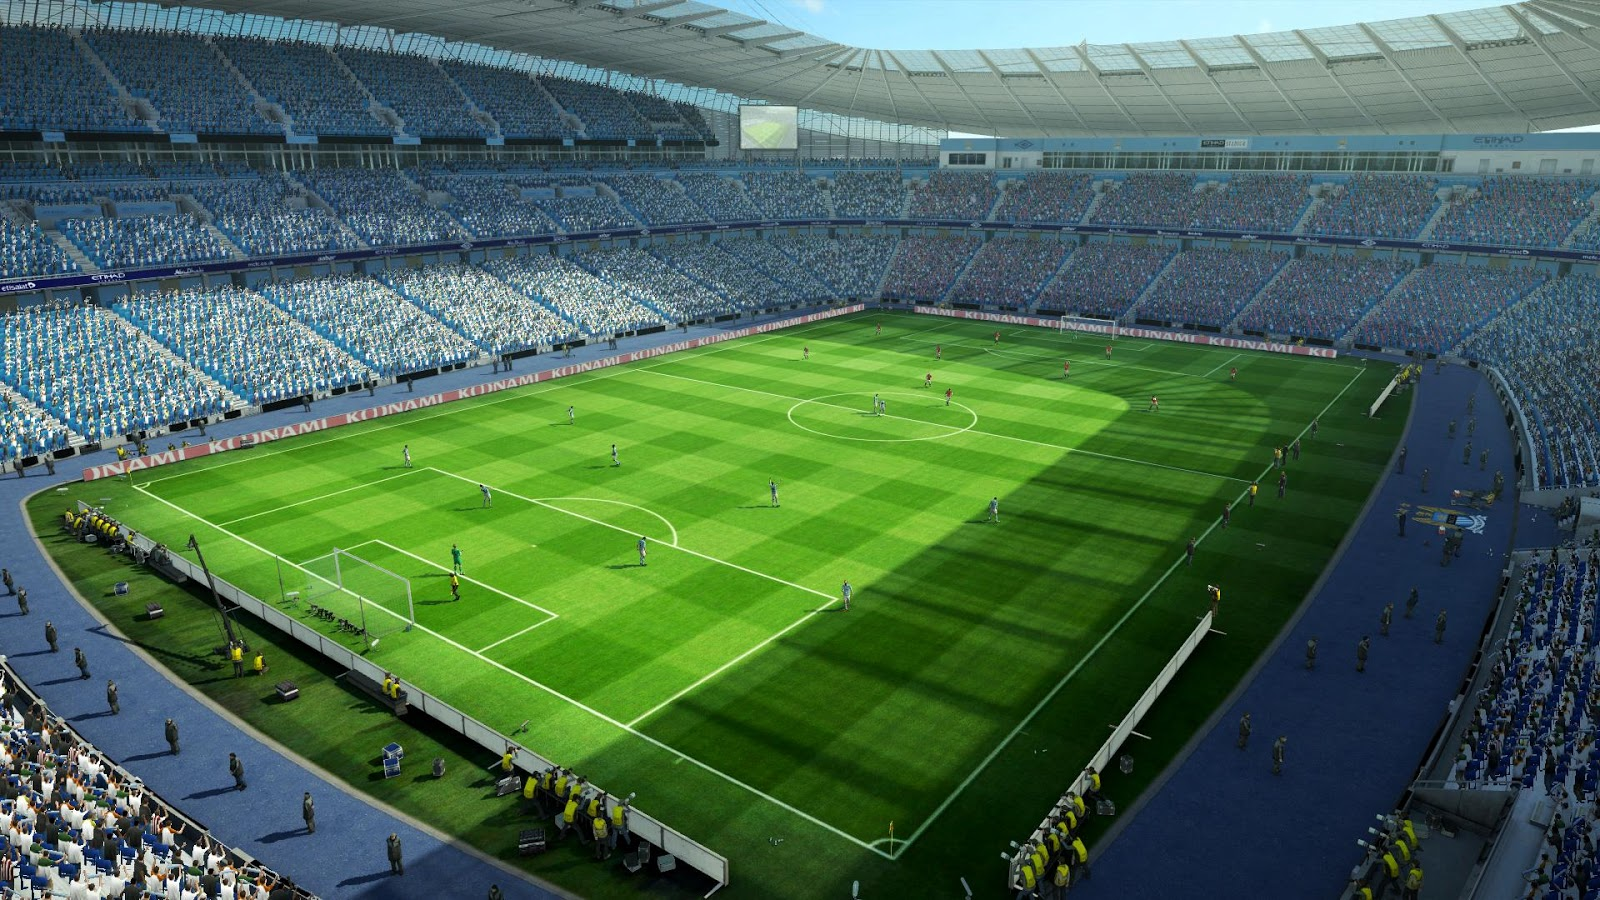 etihad stadium - photo #3